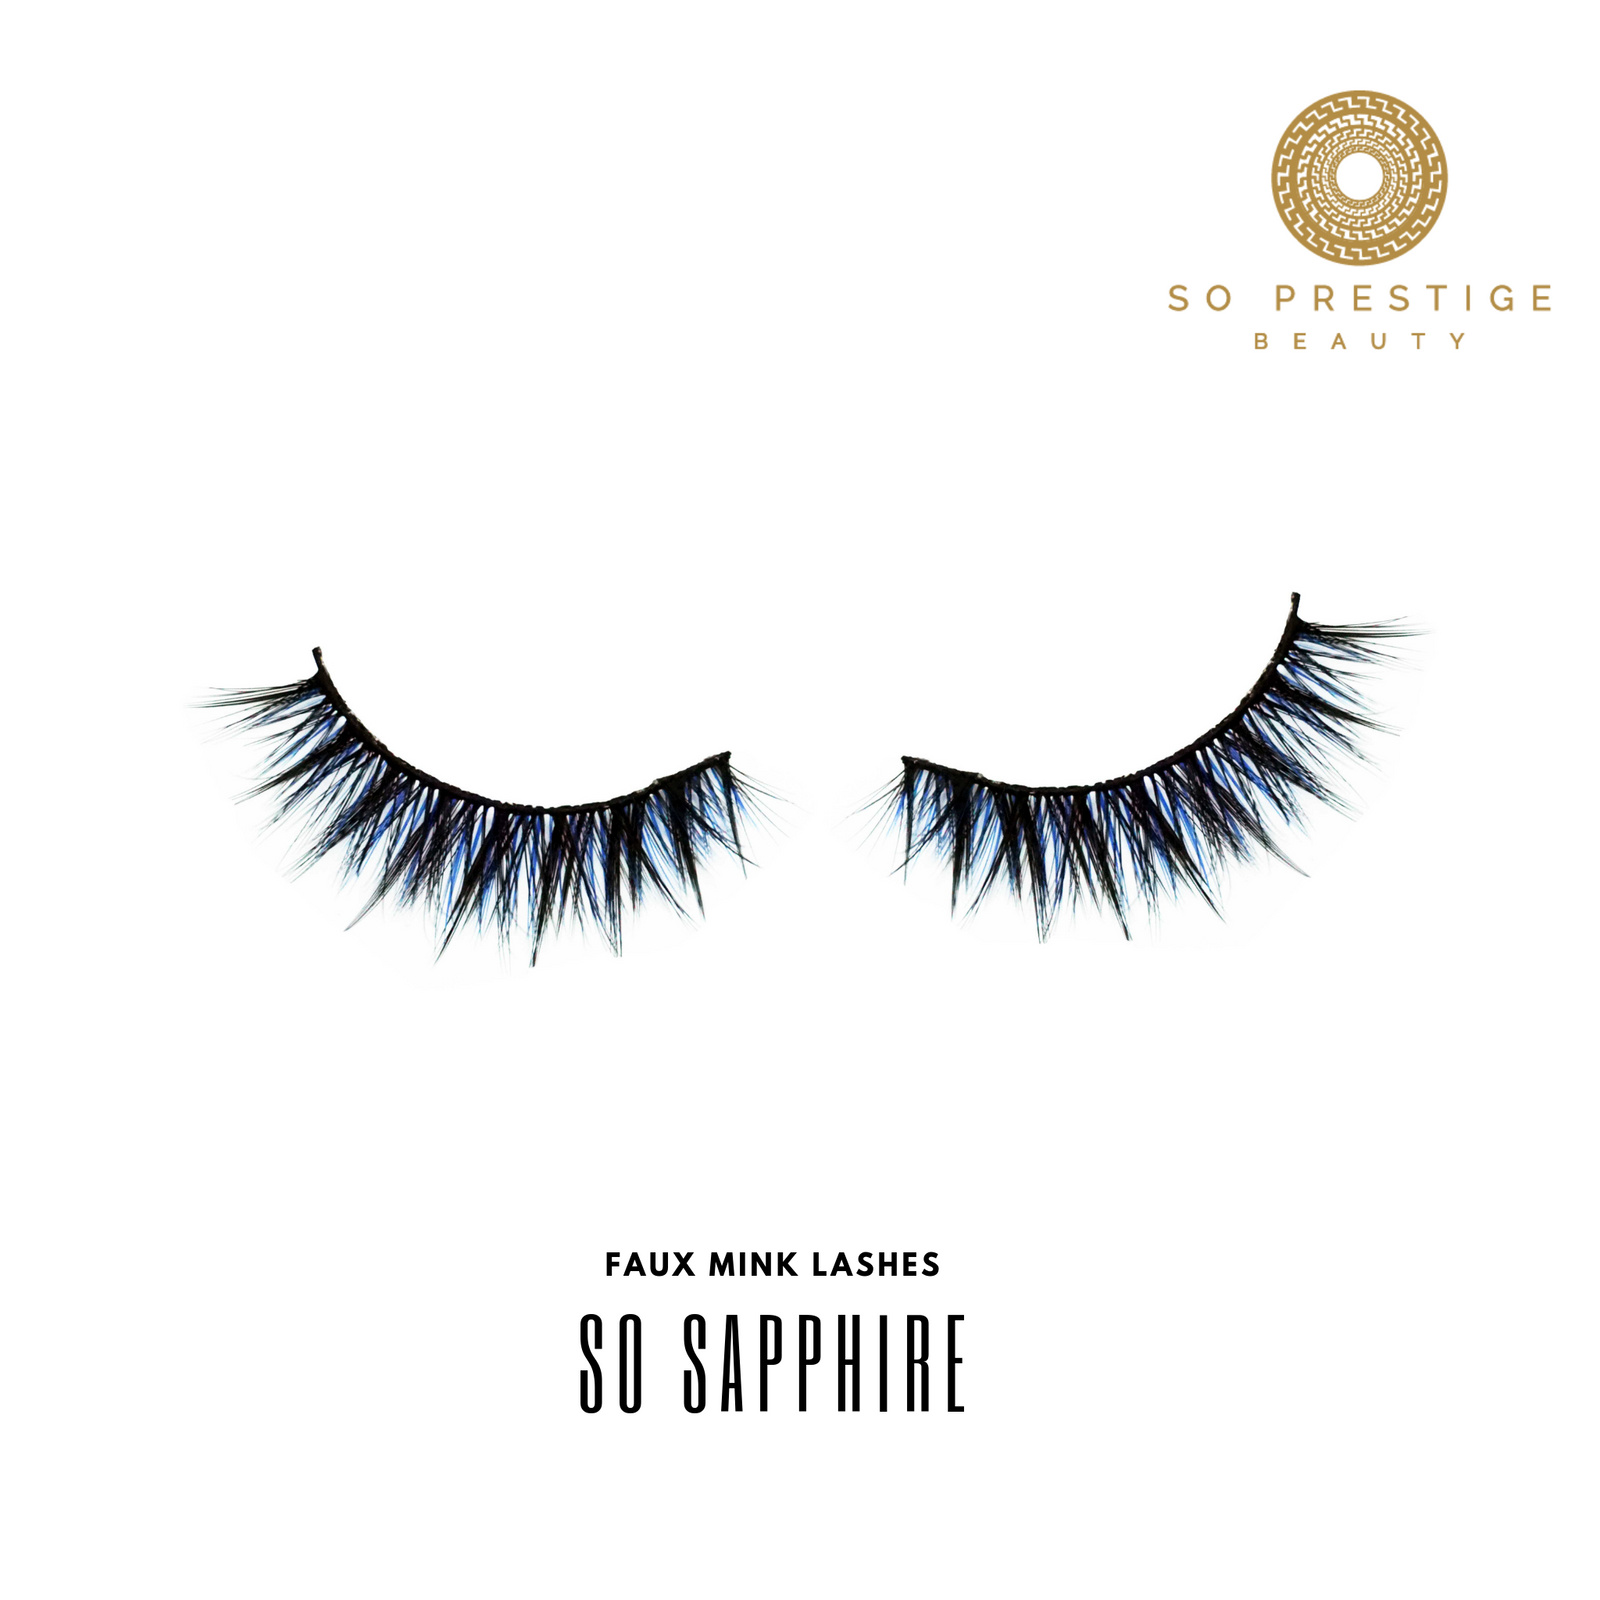 3D Faux Mink Eyelashes in the Style ' So Sapphire' by So Prestige Beauty